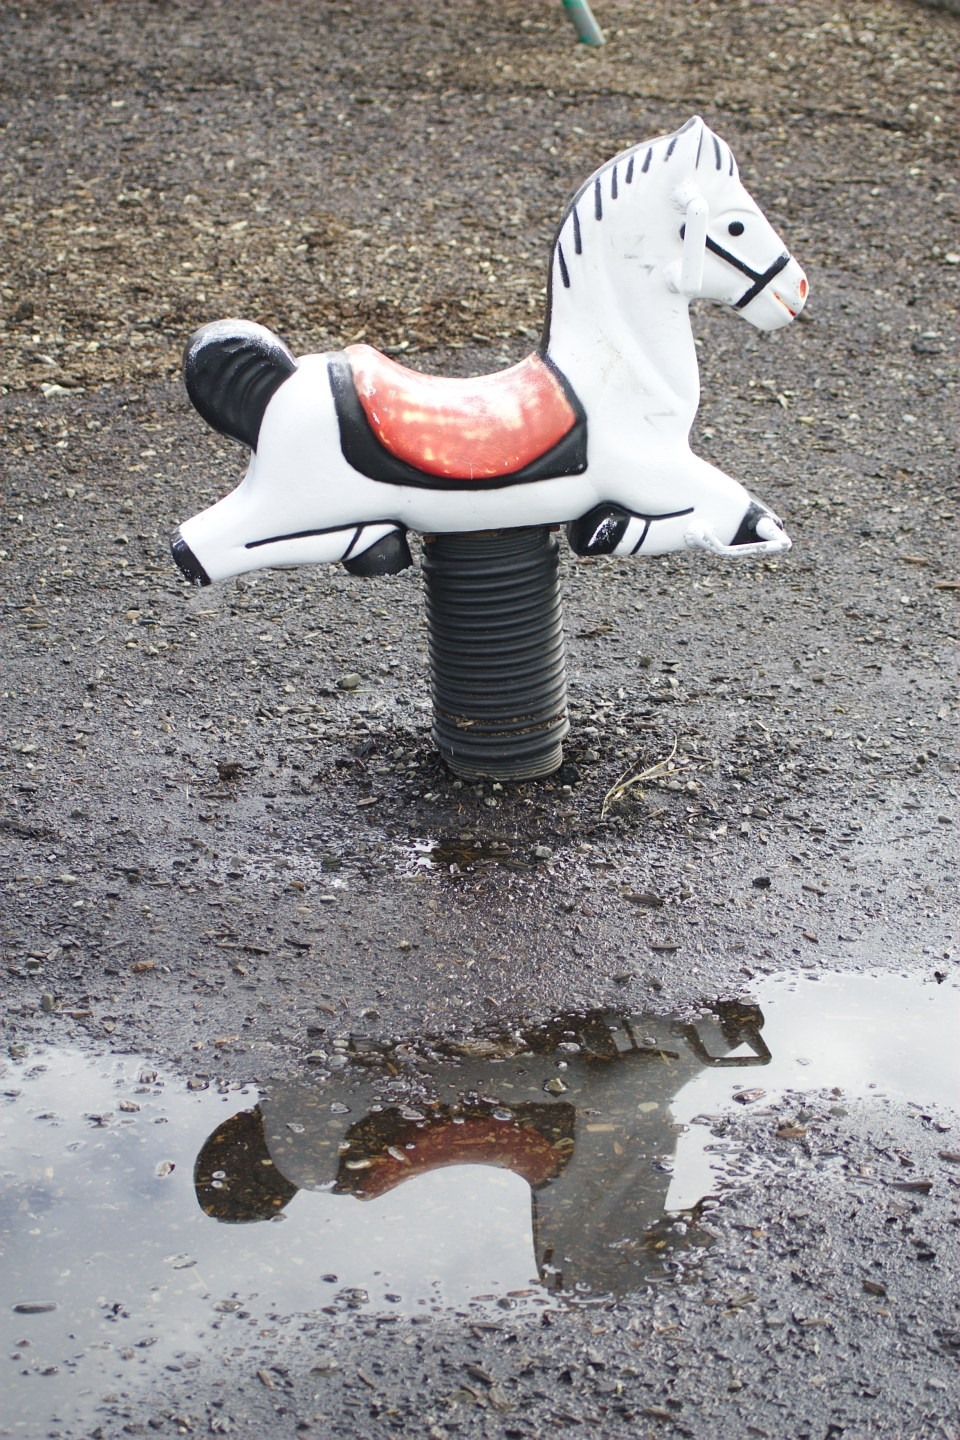 ride on horse at playground with a puddle of water